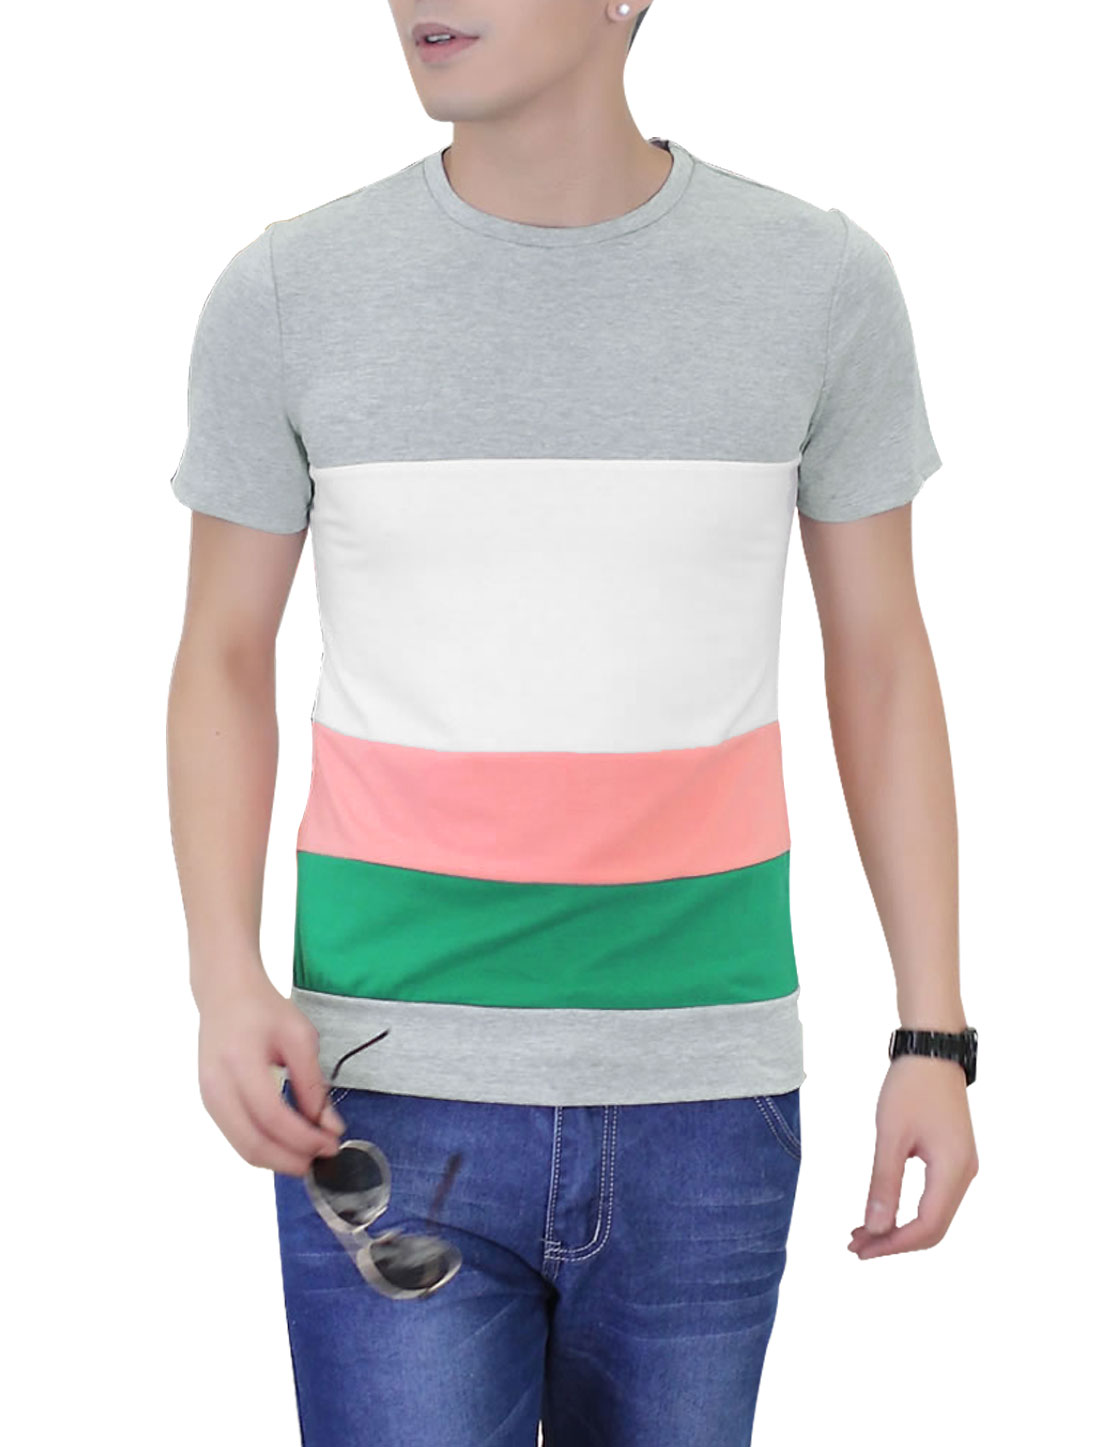 Men Casual Contrast Color Round Neck Short Sleeve Slim Tee Shirt Gray M